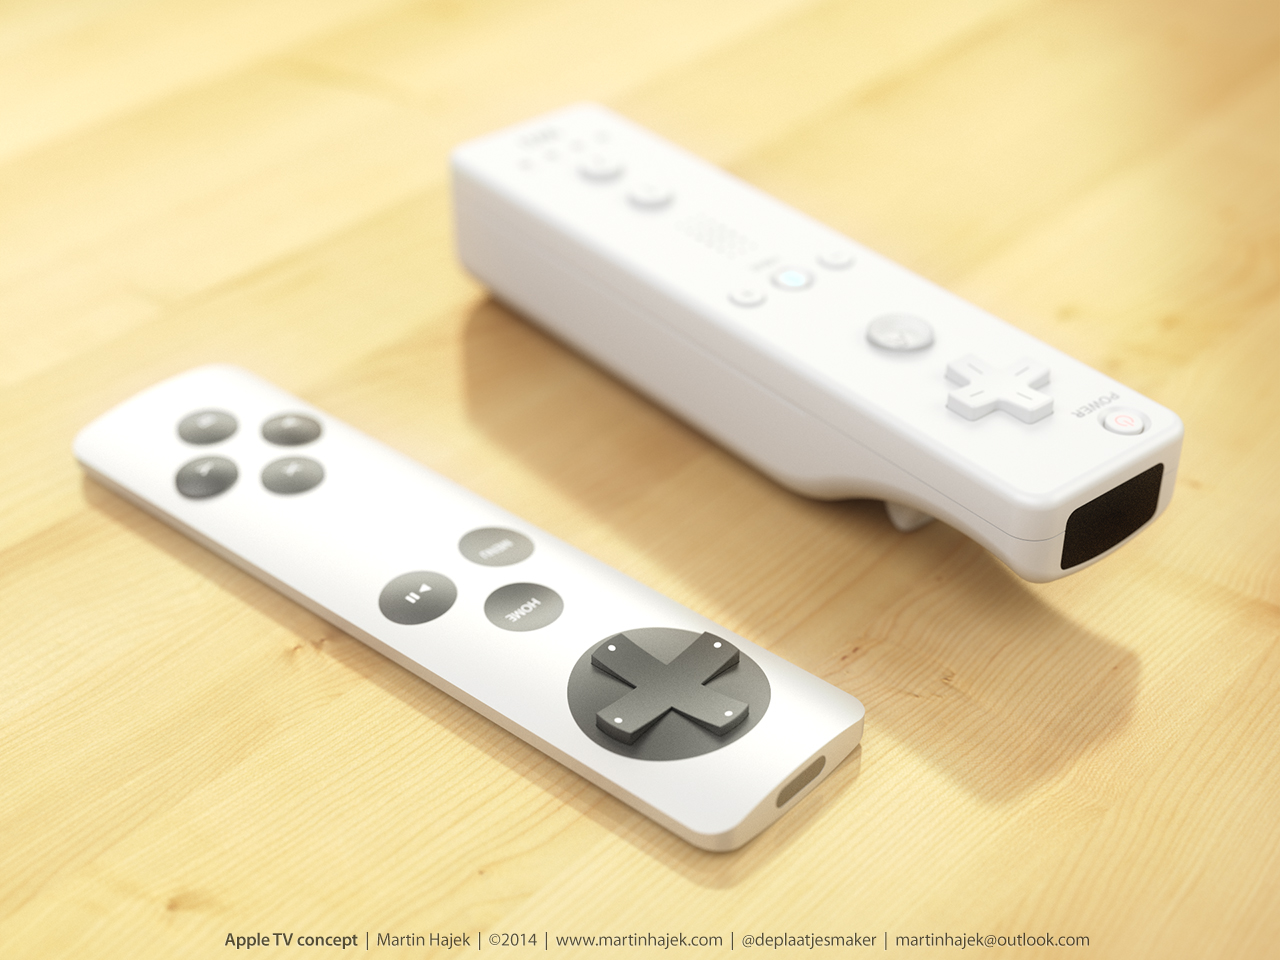 Apple TV koncept fjärrkontroll Nintendo Wiimote